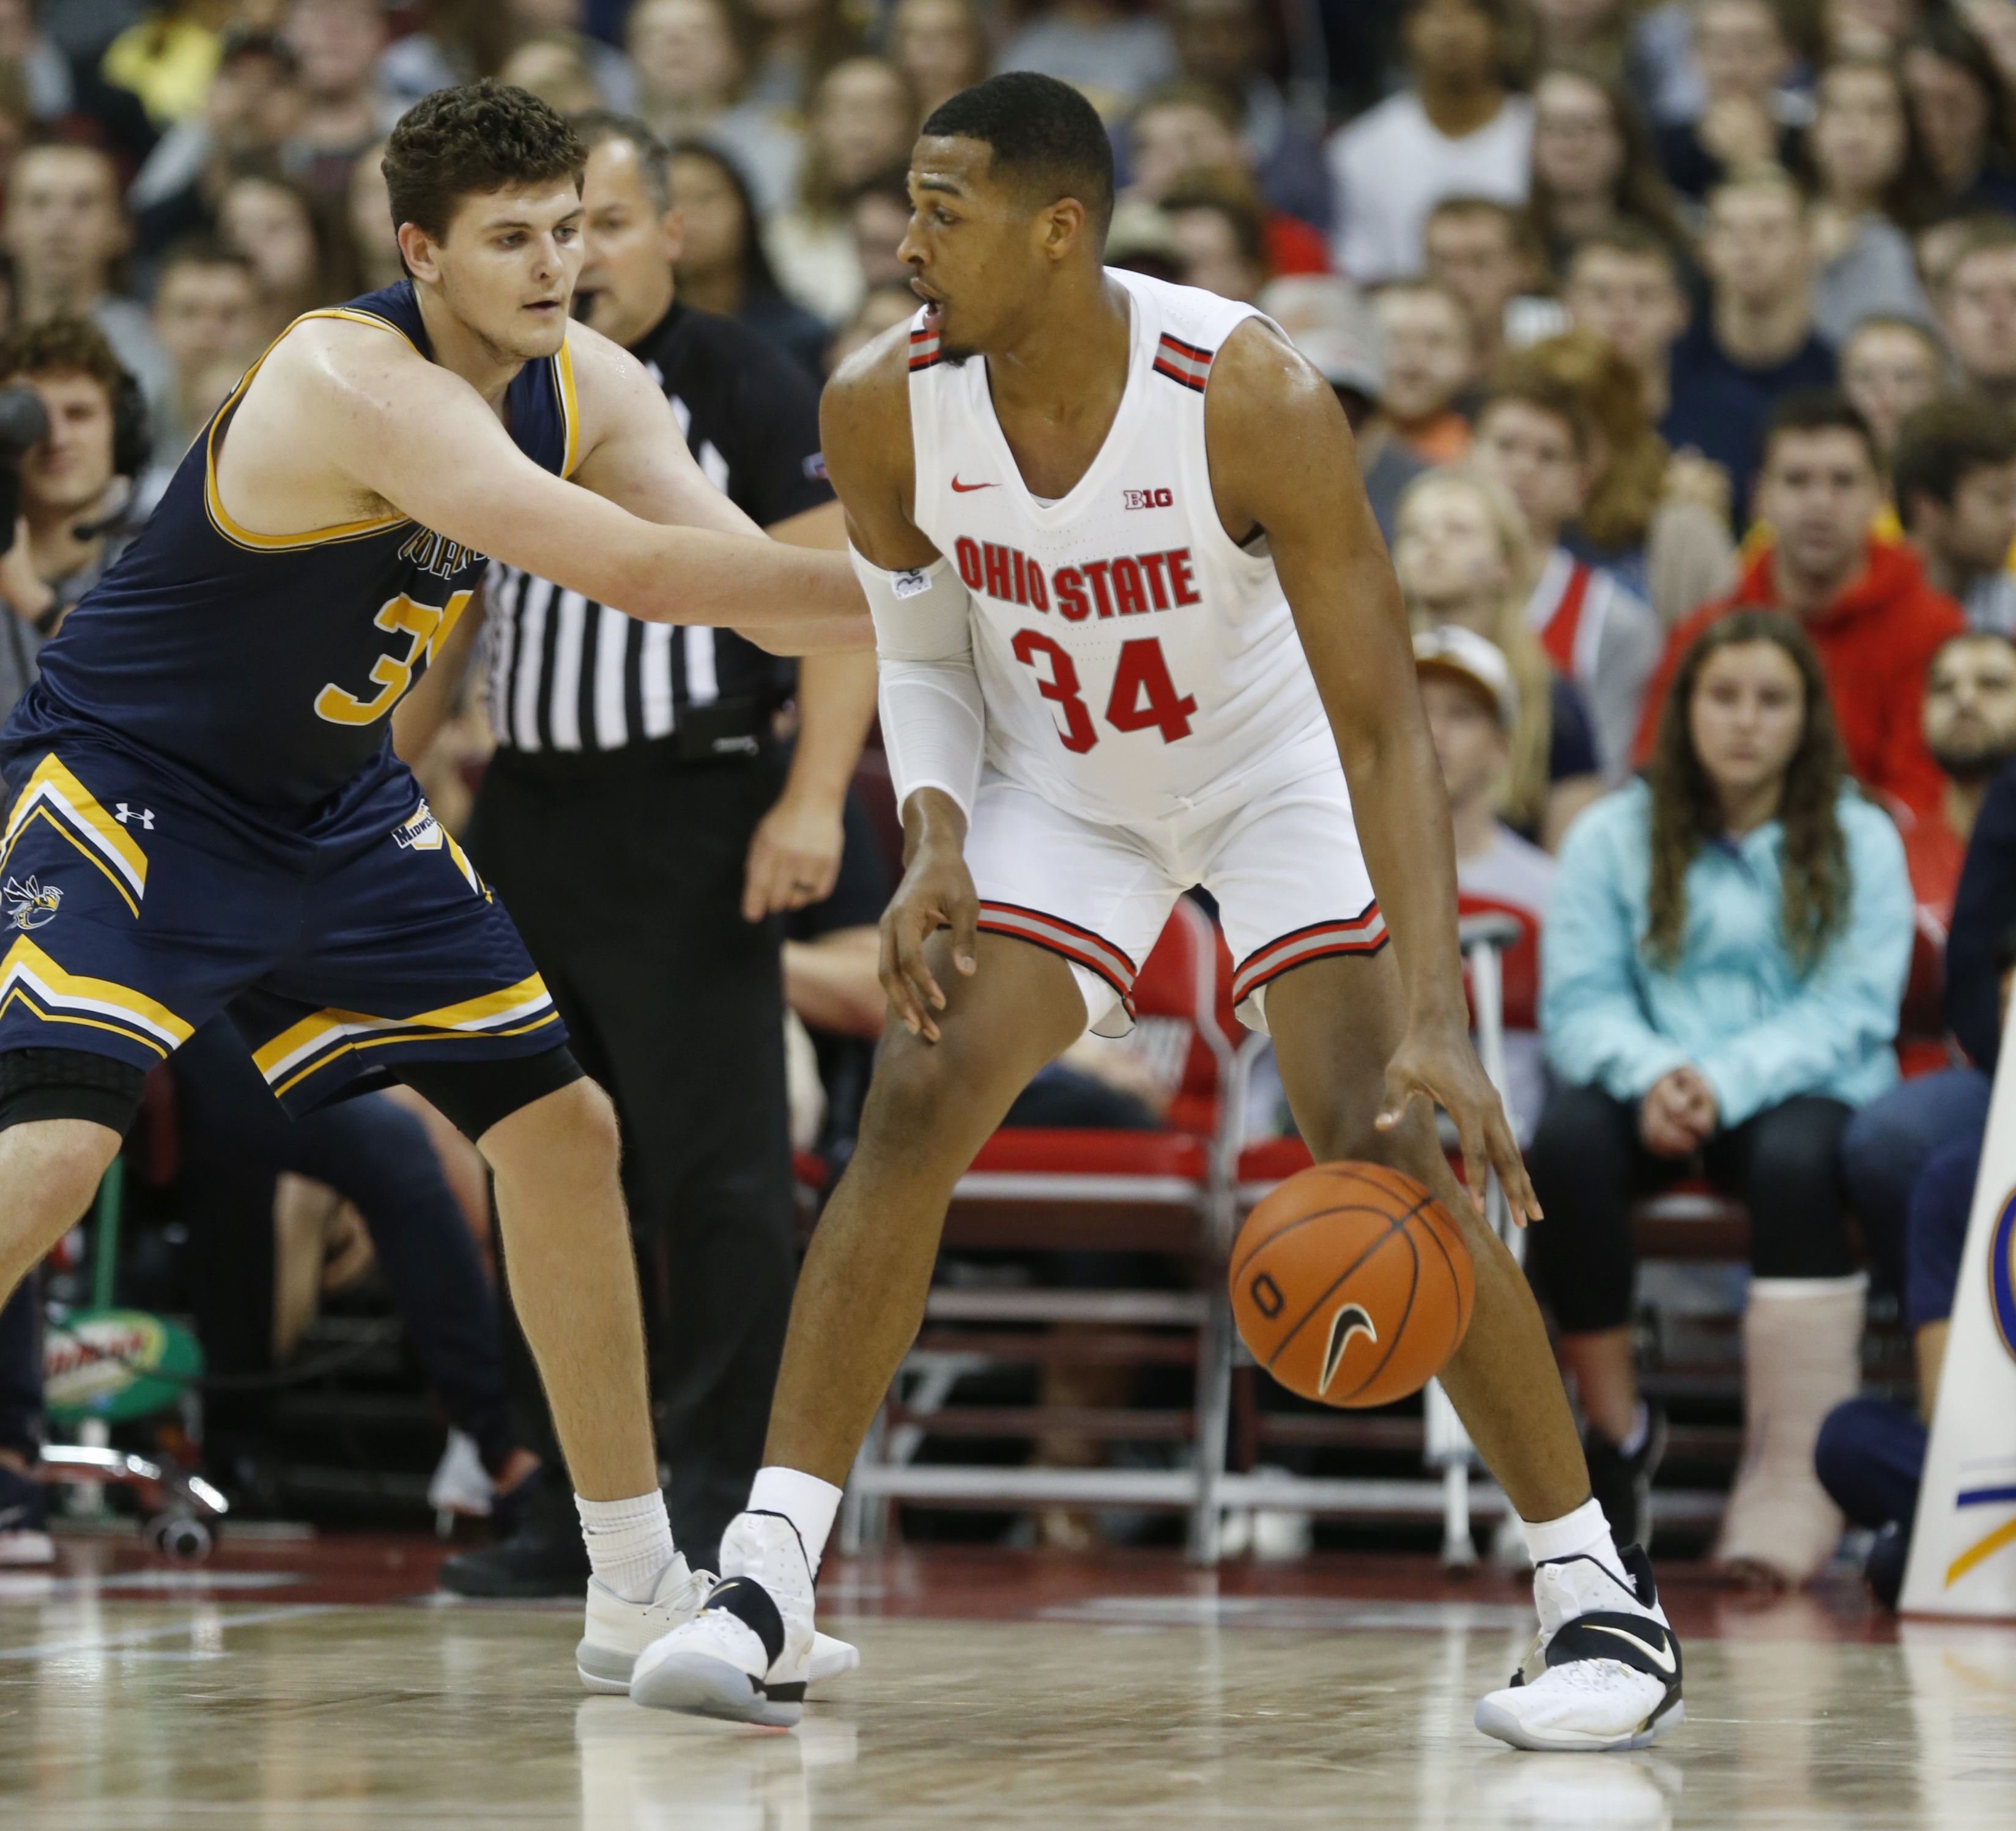 What Should Fans Take Away From Ohio State Basketball S